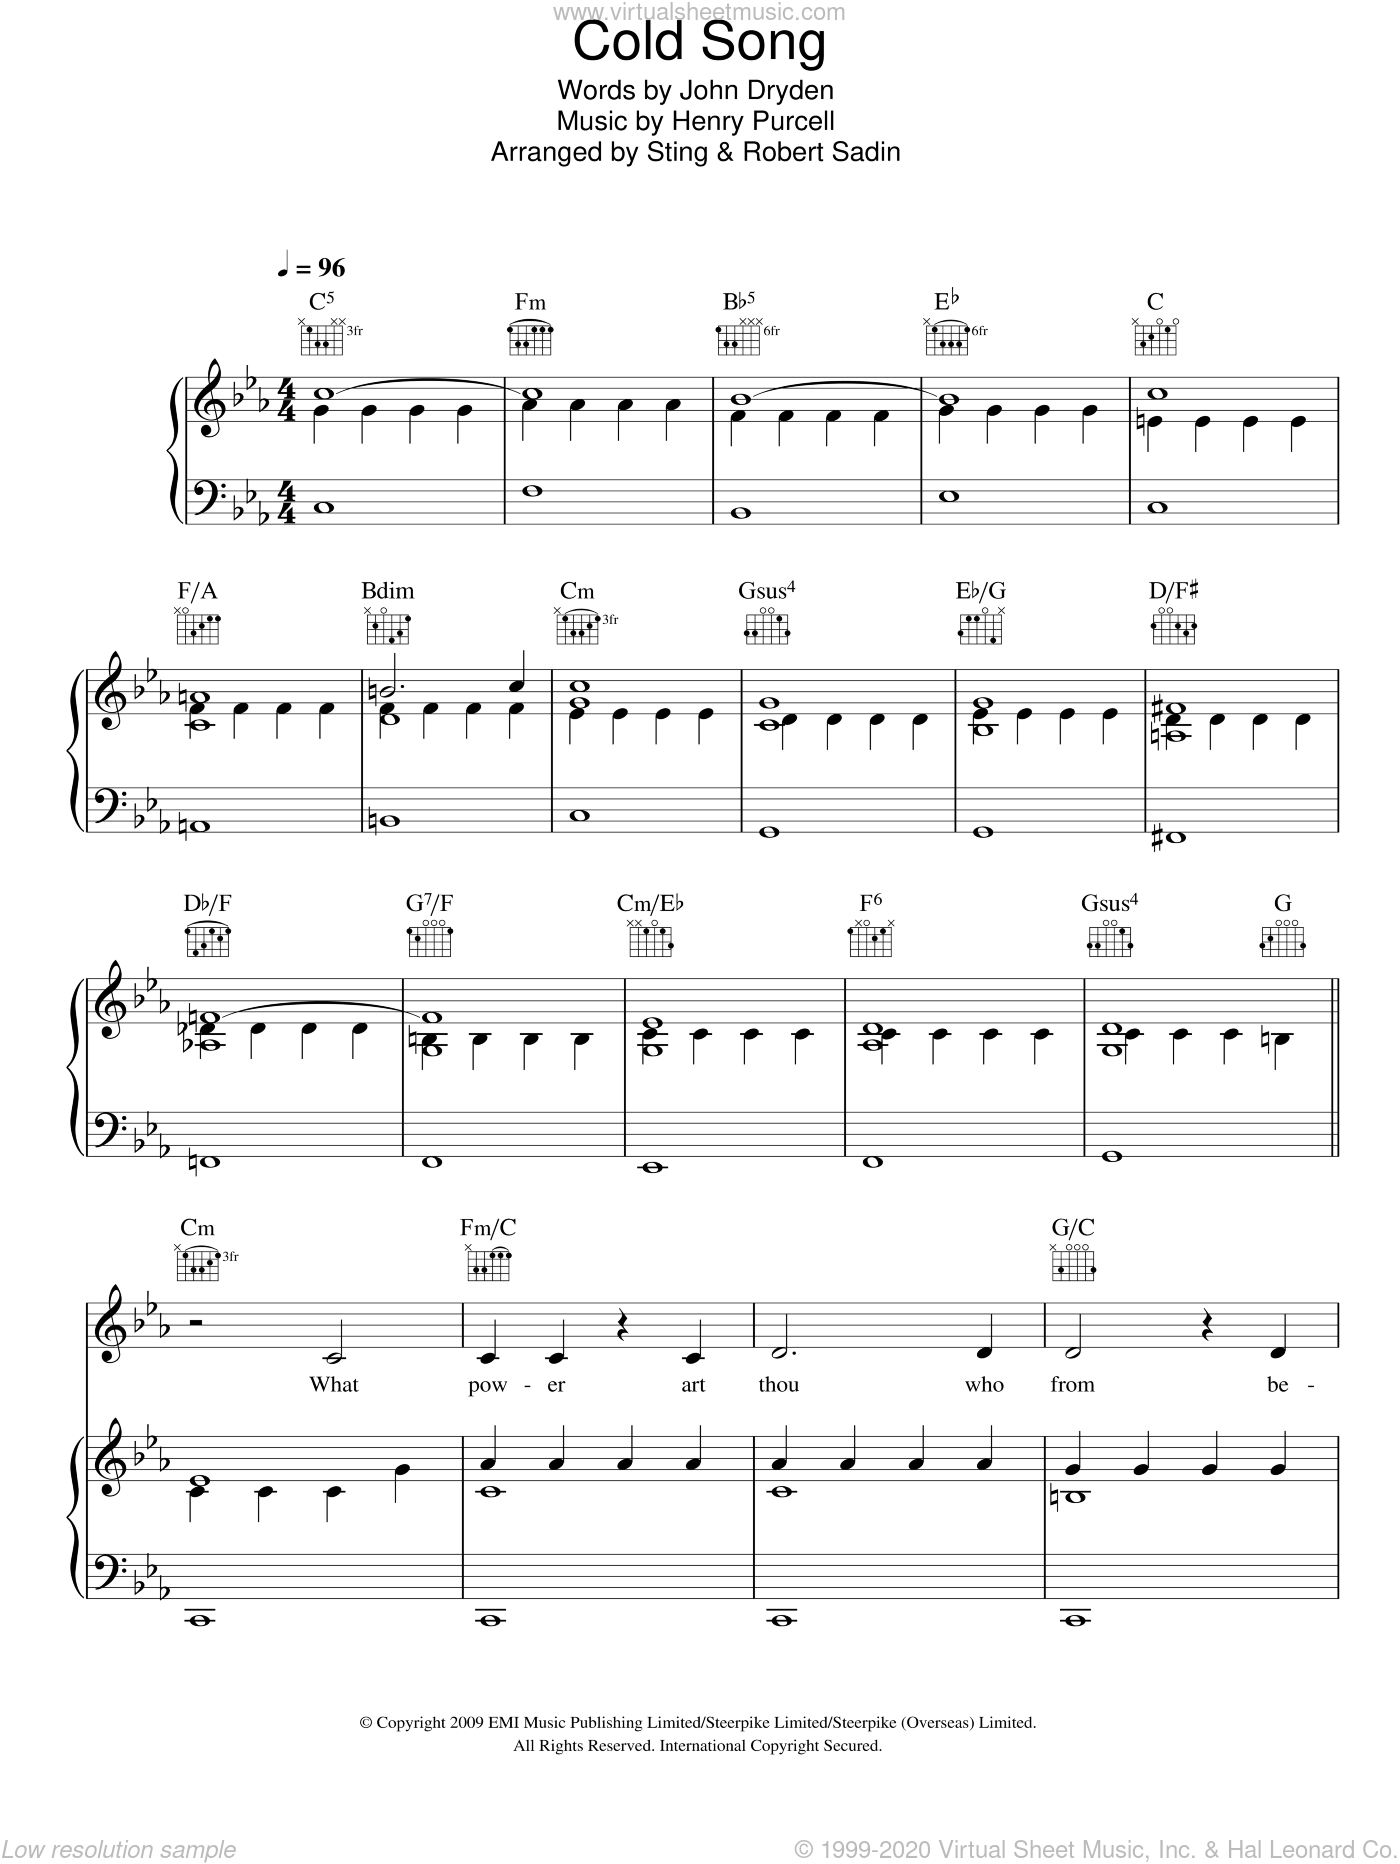 Cold Song sheet music for voice, piano or guitar by John Dryden